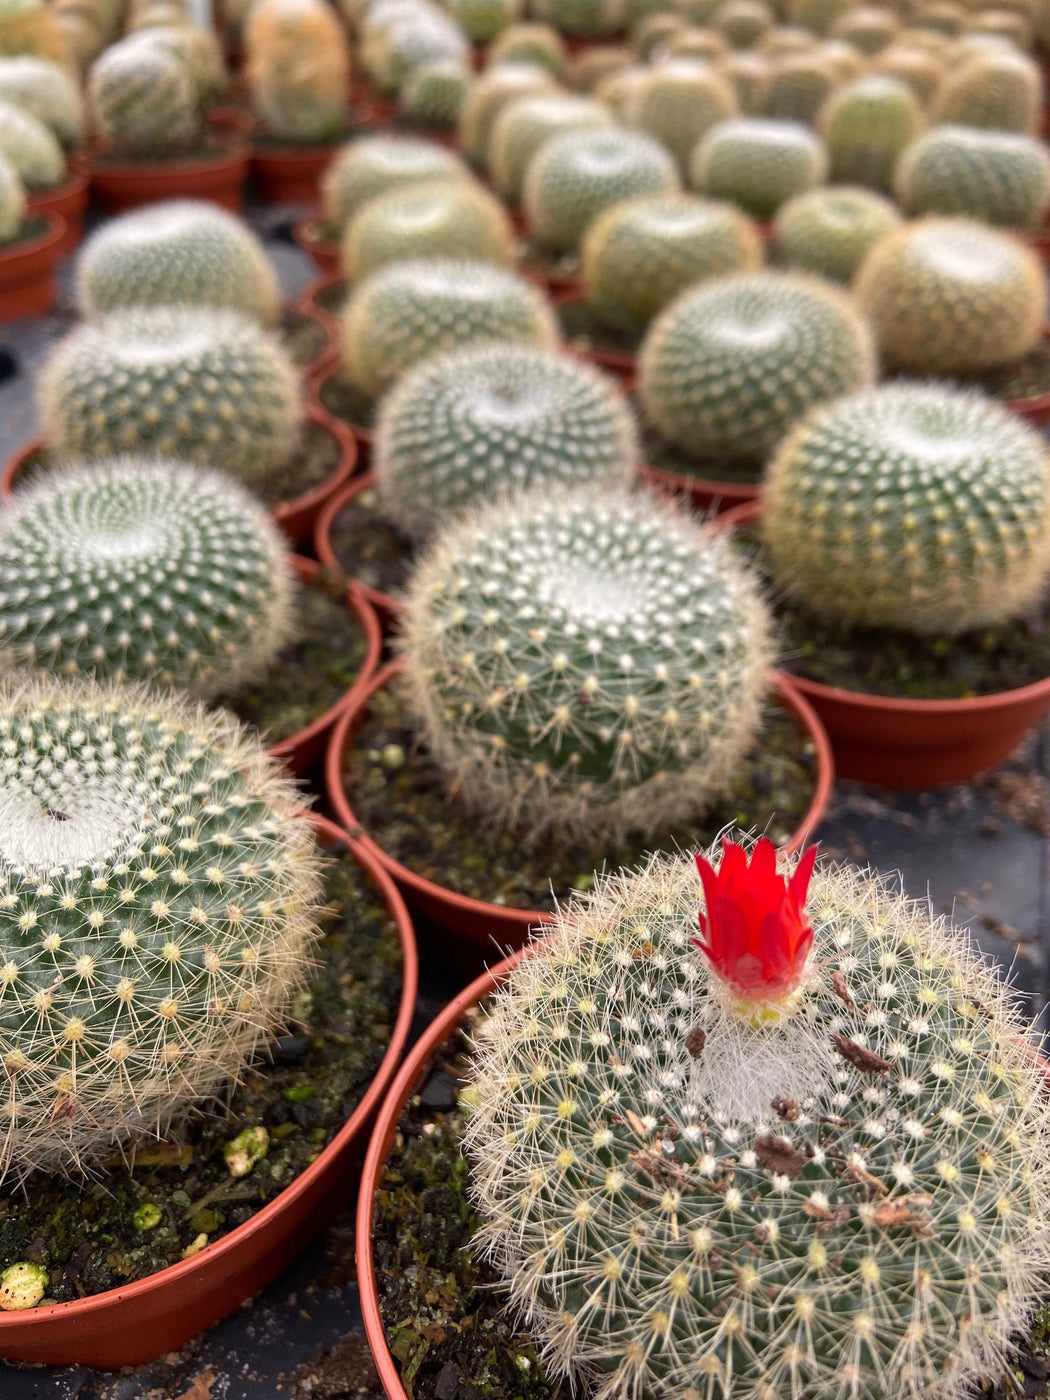 Multiple rows of the barrel cactus named Cortez with the cactus in the front showing a bright red bloom